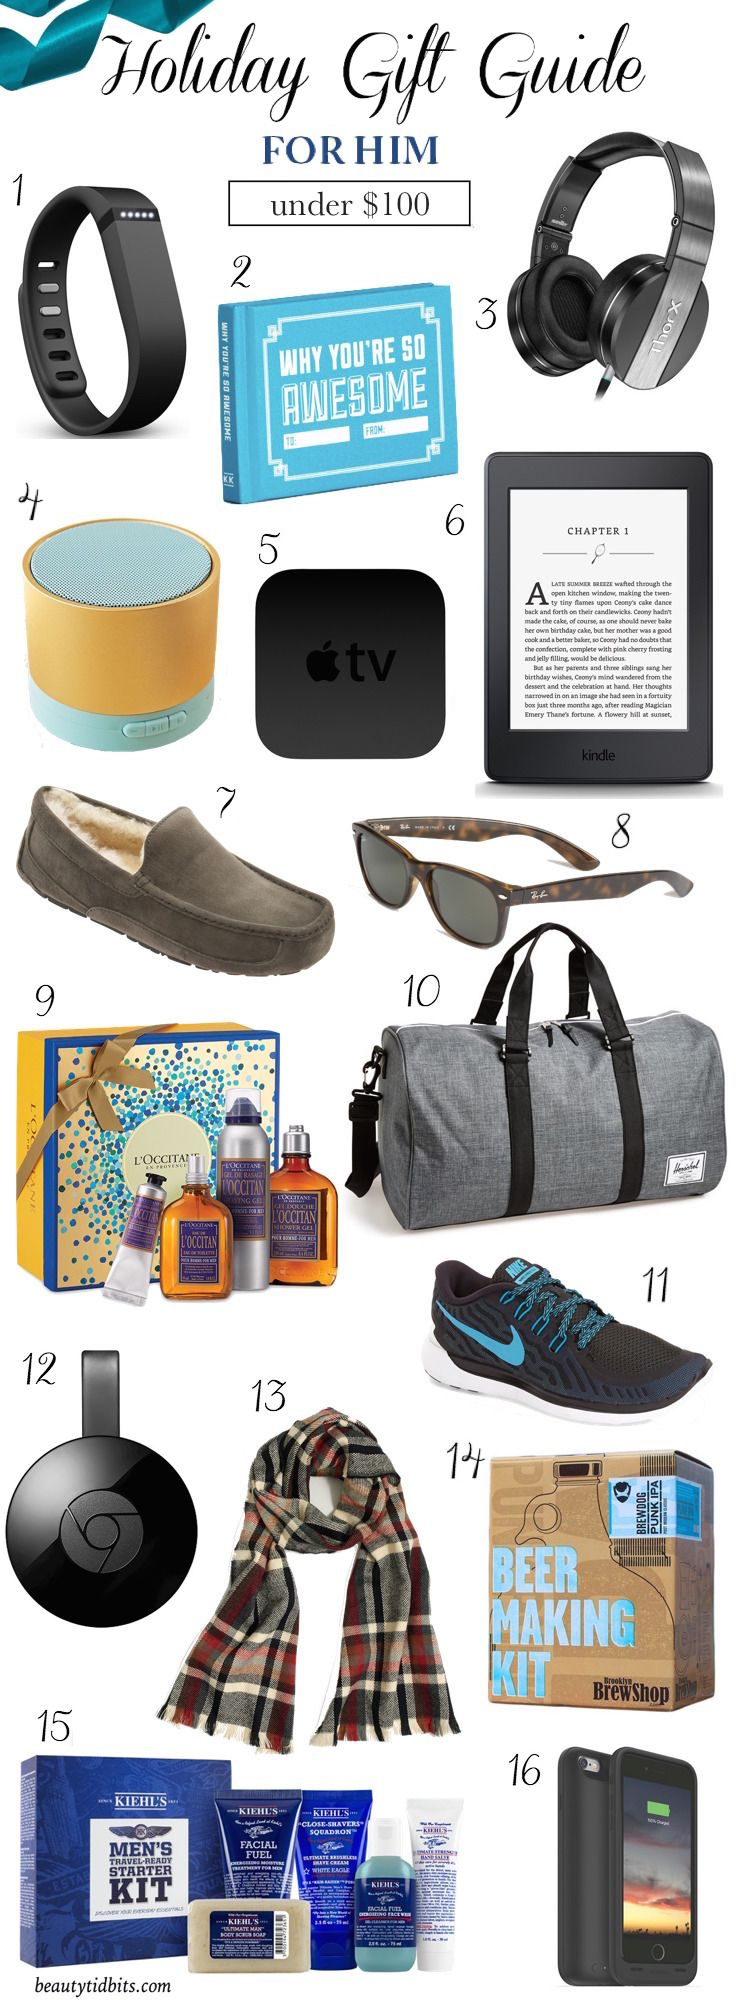 20 Ideas For Gifts Guy Birthday